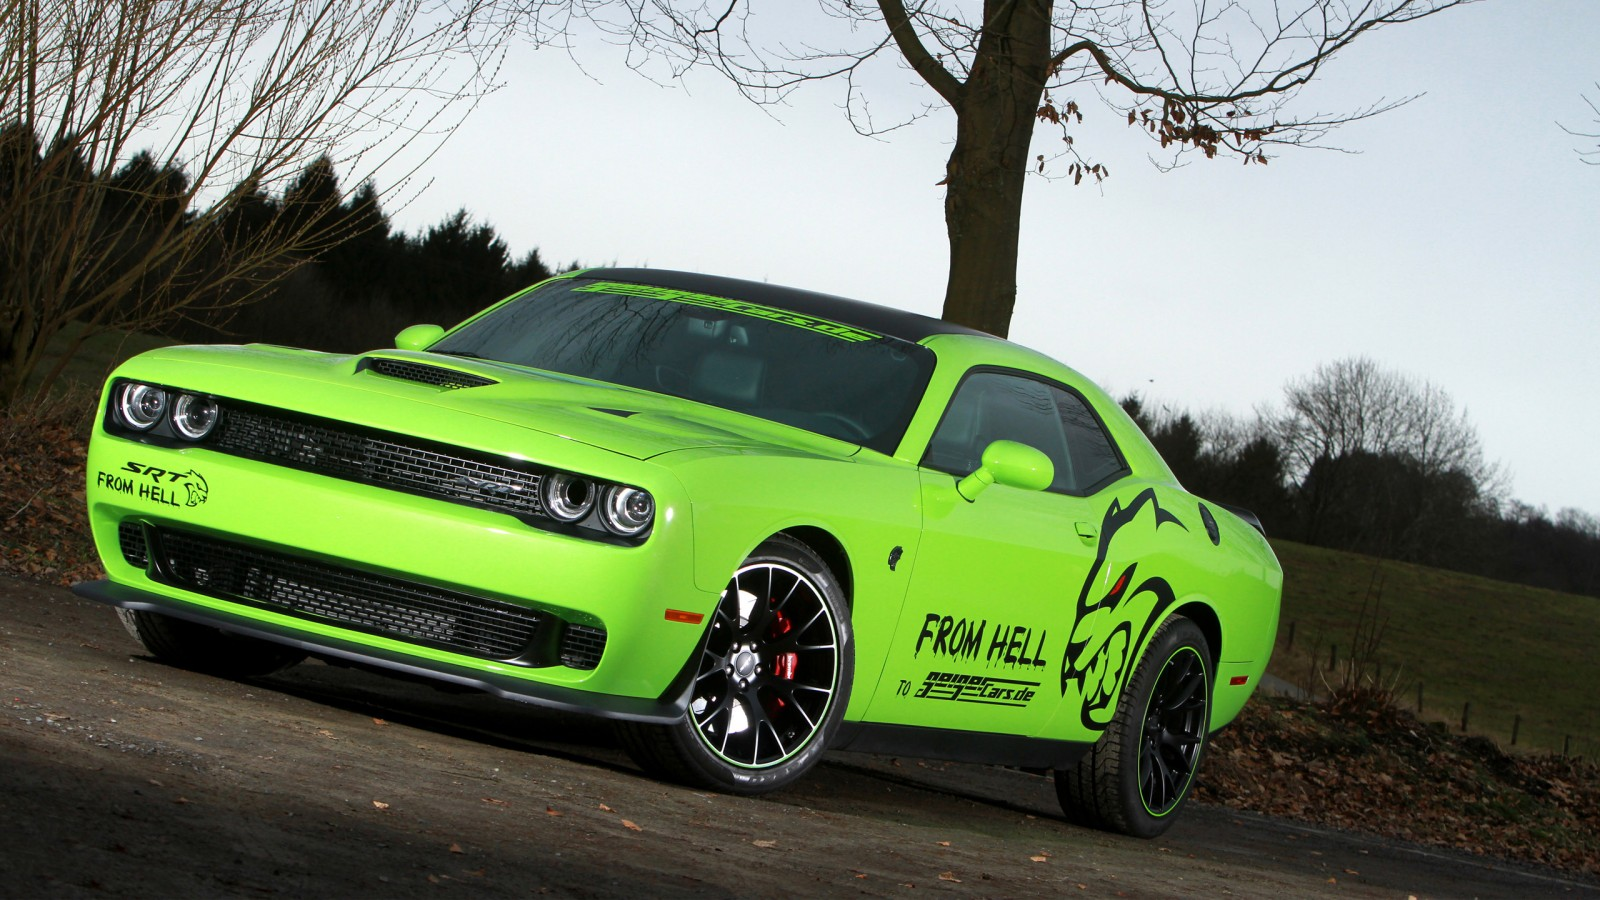 Dodge Charger Car Wallpapers 2015 Geigercars Dodge Challenger Srt Hellcat Wallpaper